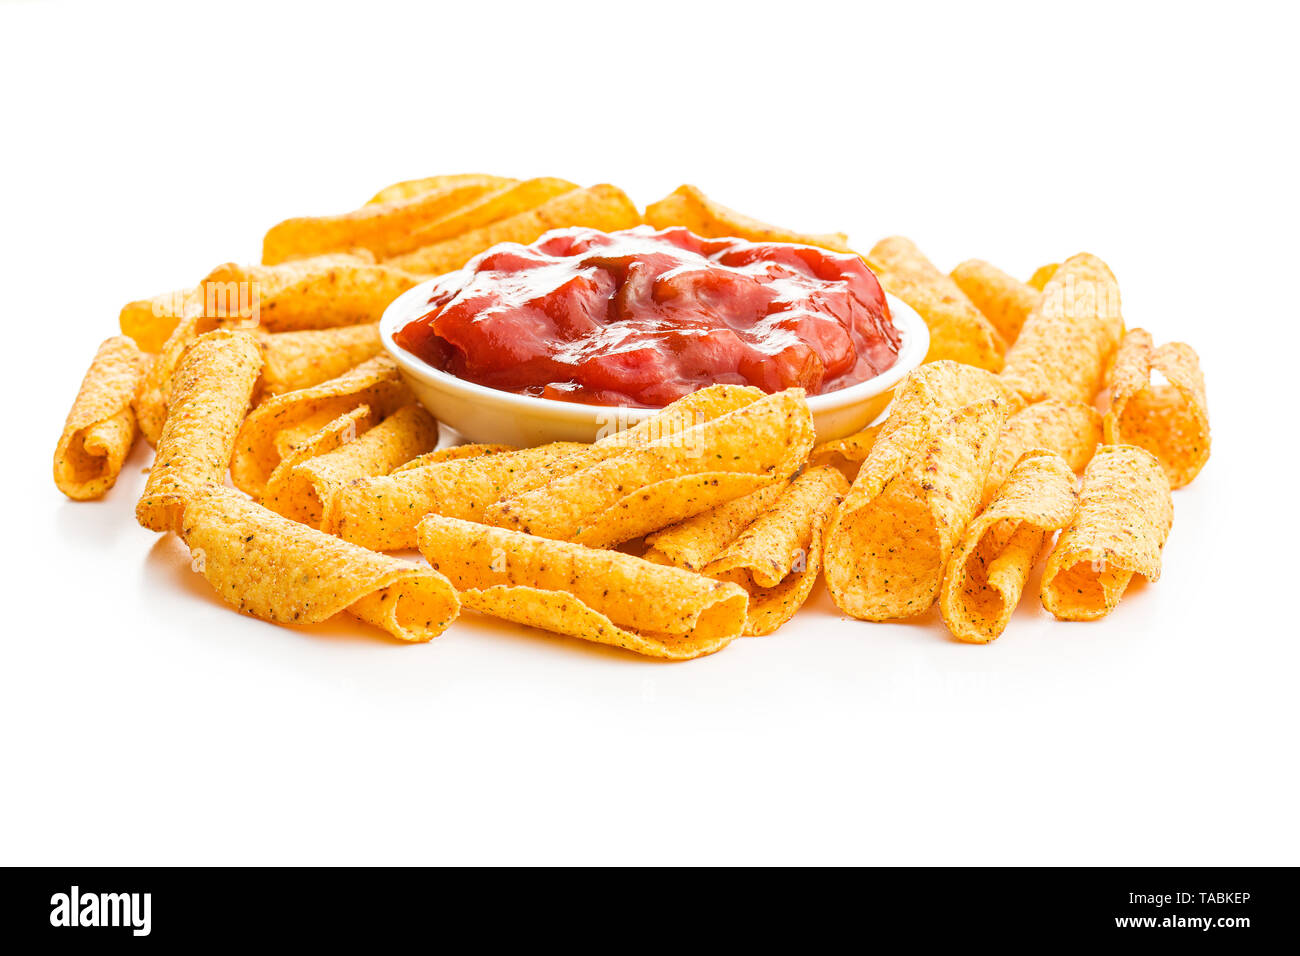 Rolled mexican nacho chips and salsa dip isolated on white background. - Stock Image